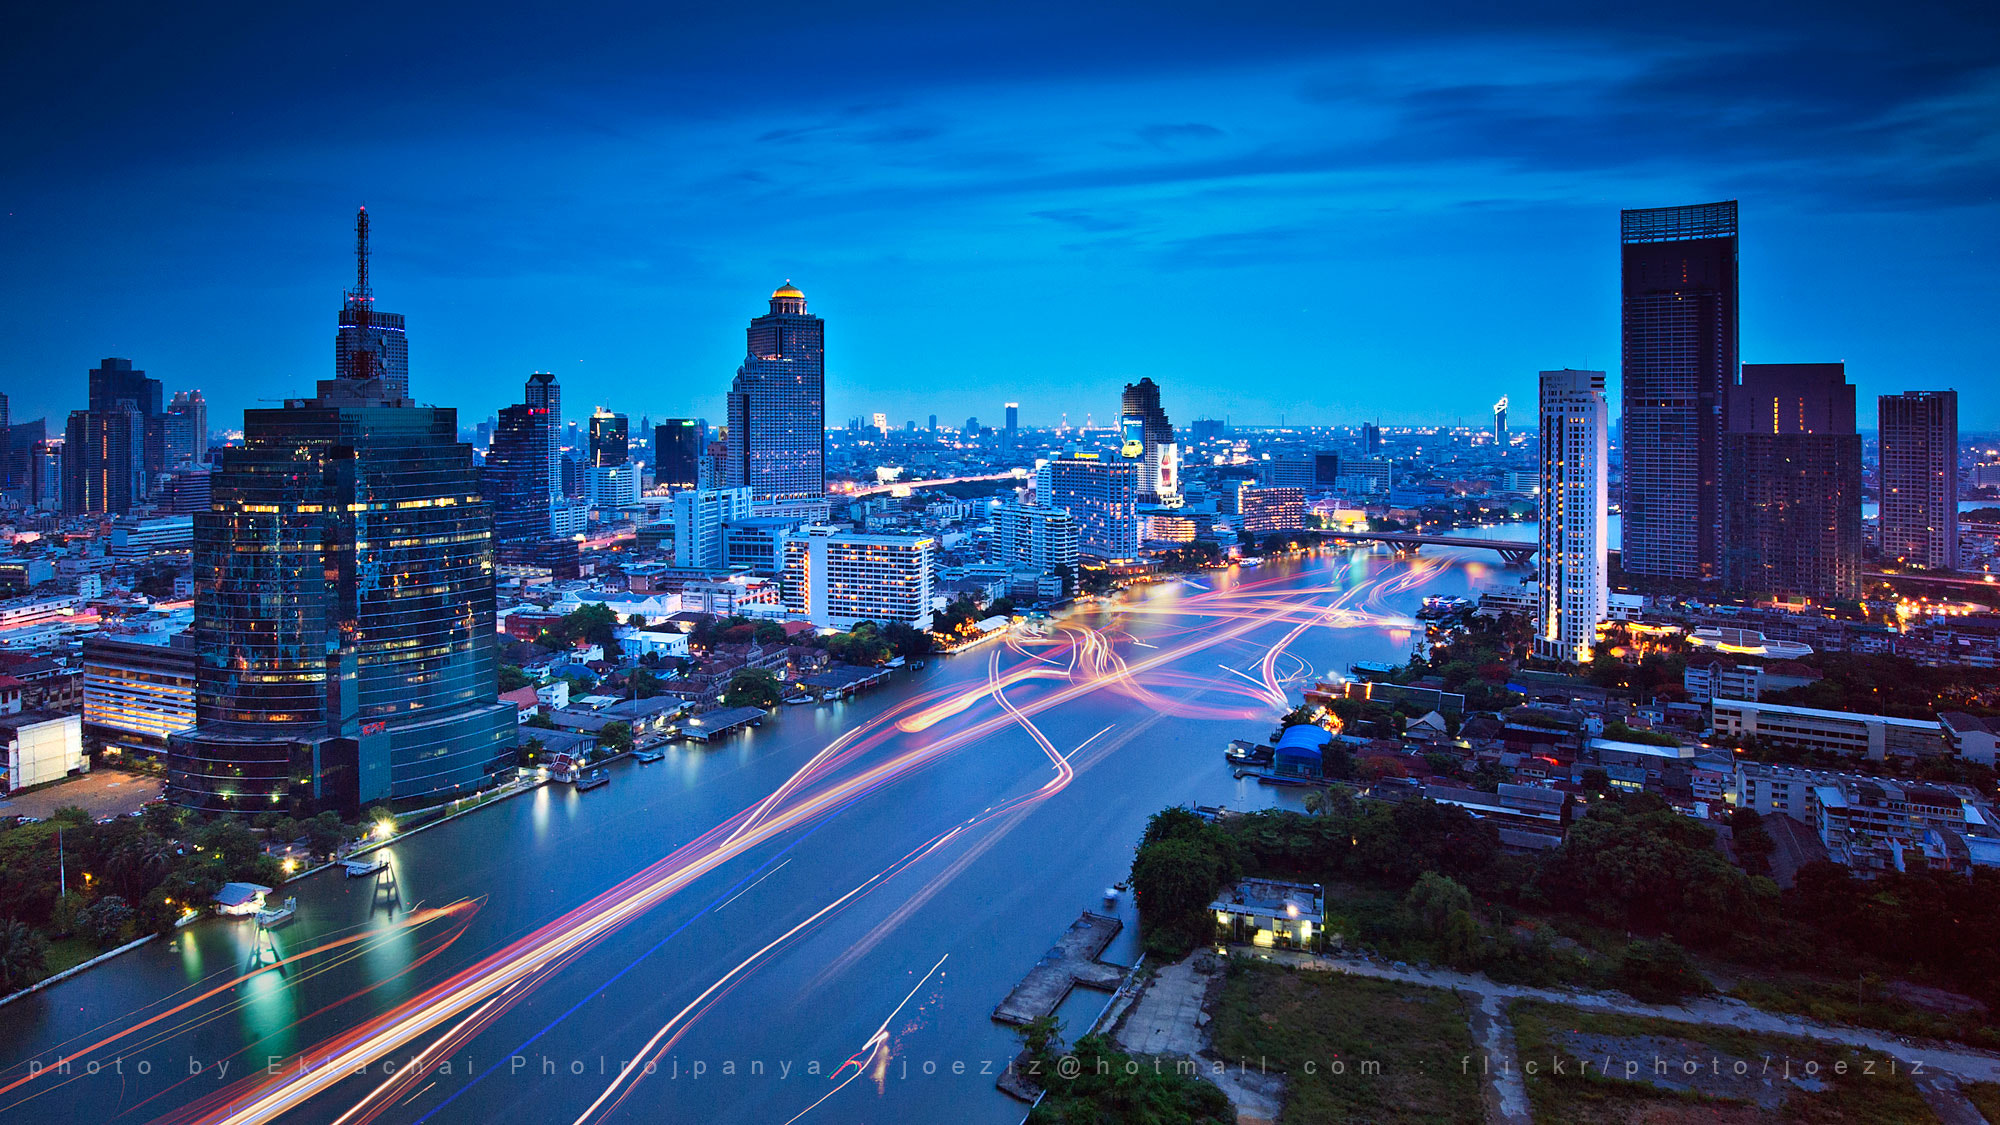 Photograph Million view of Bangkok by Ekkachai Pholrojpanya on 500px